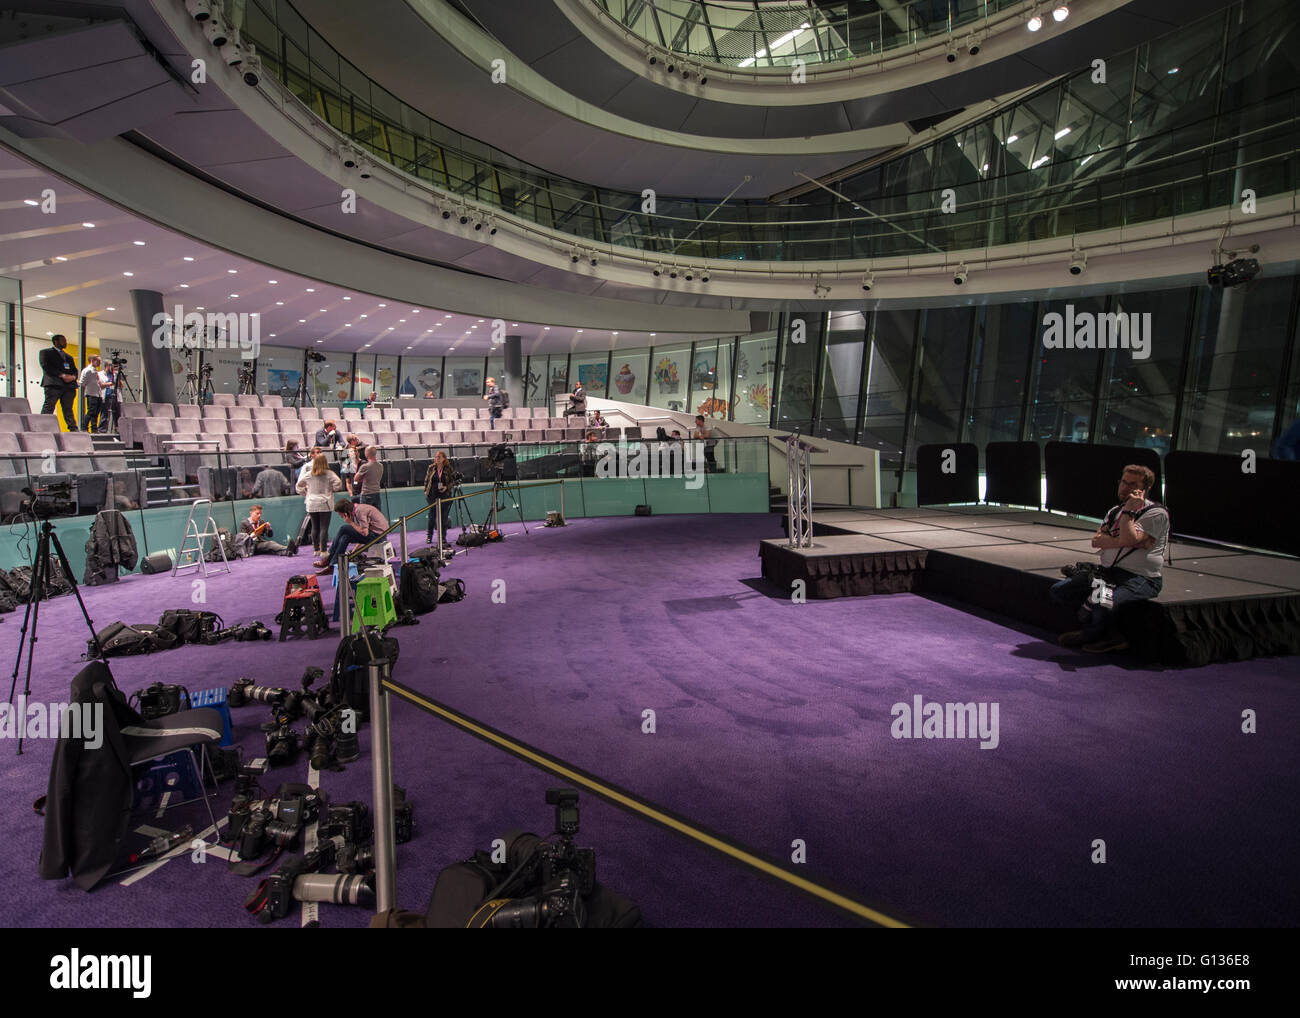 Photographers and Media await the outcome of the London Mayor election in City Hall with a delayed result announcement. - Stock Image